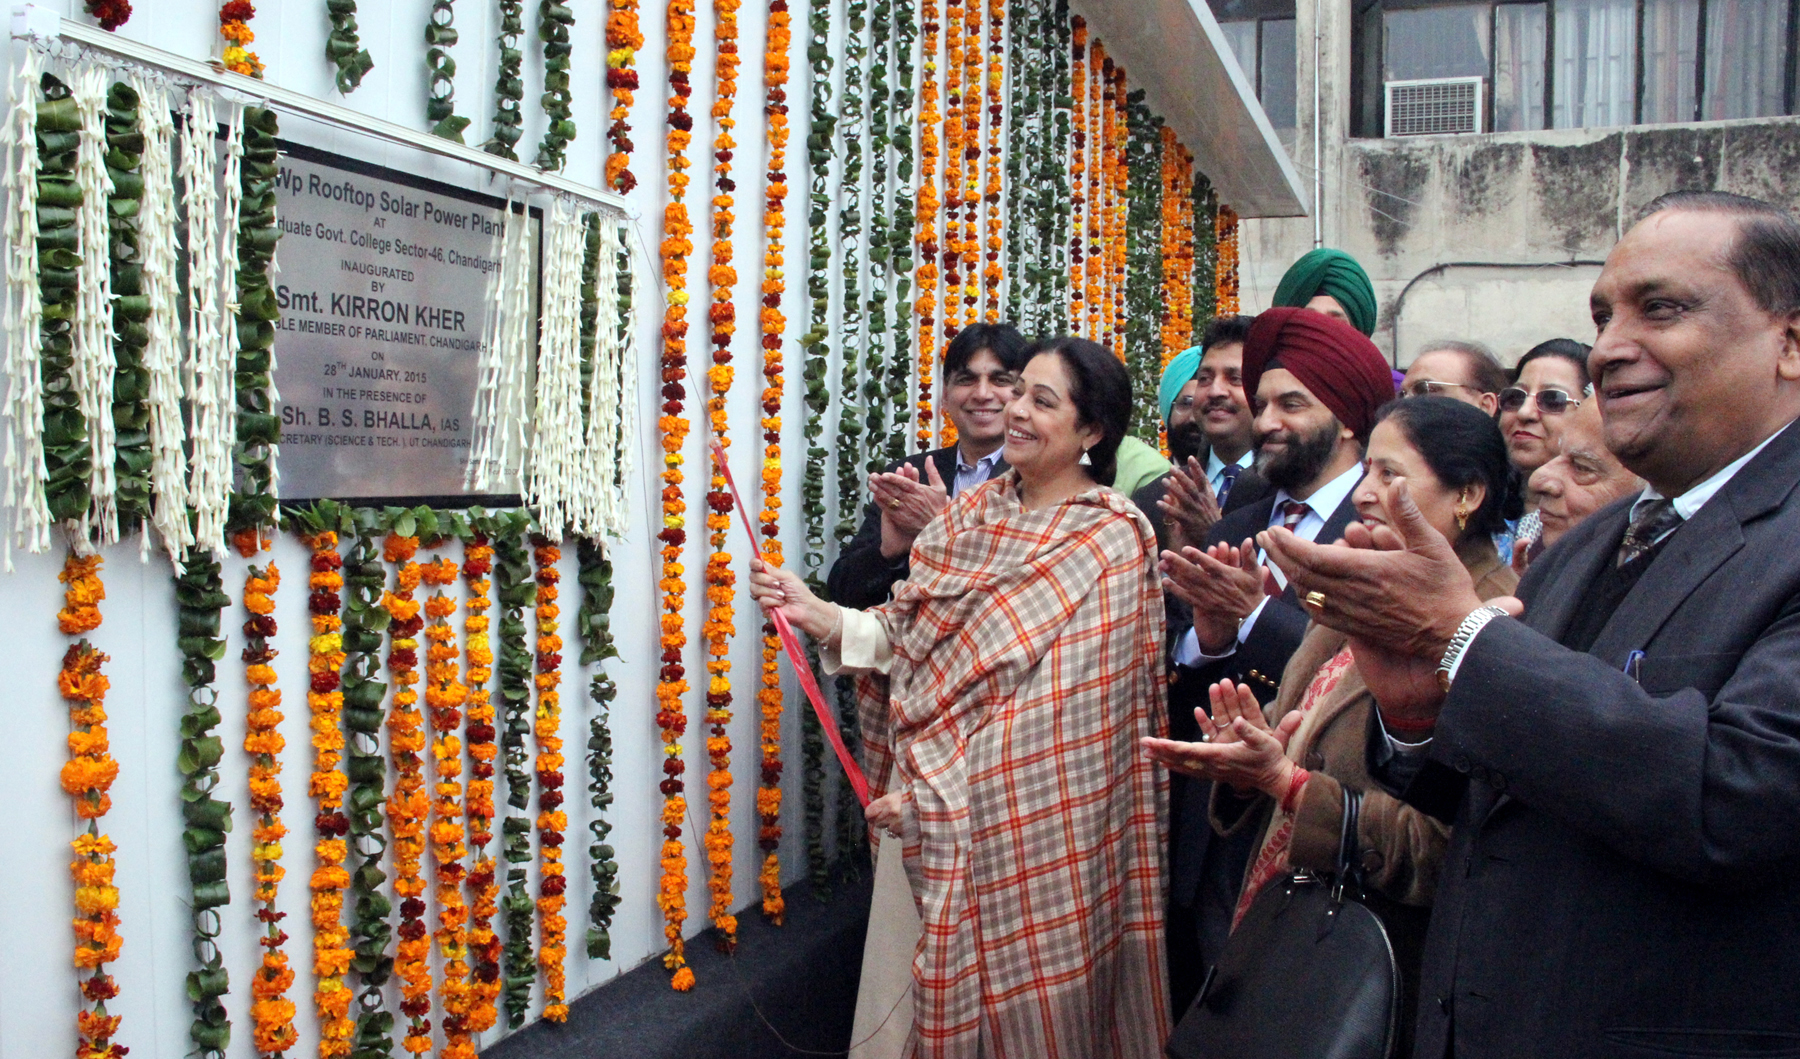 Mrs. Kirron Kher, Member of Parliament, Chandigarh inaugurating the 210 KWP Rooftop Solar Powar Plant at Postgraduate Govt. College, Sector-46, Chandigarh on Wednesday, January 28, 2015.